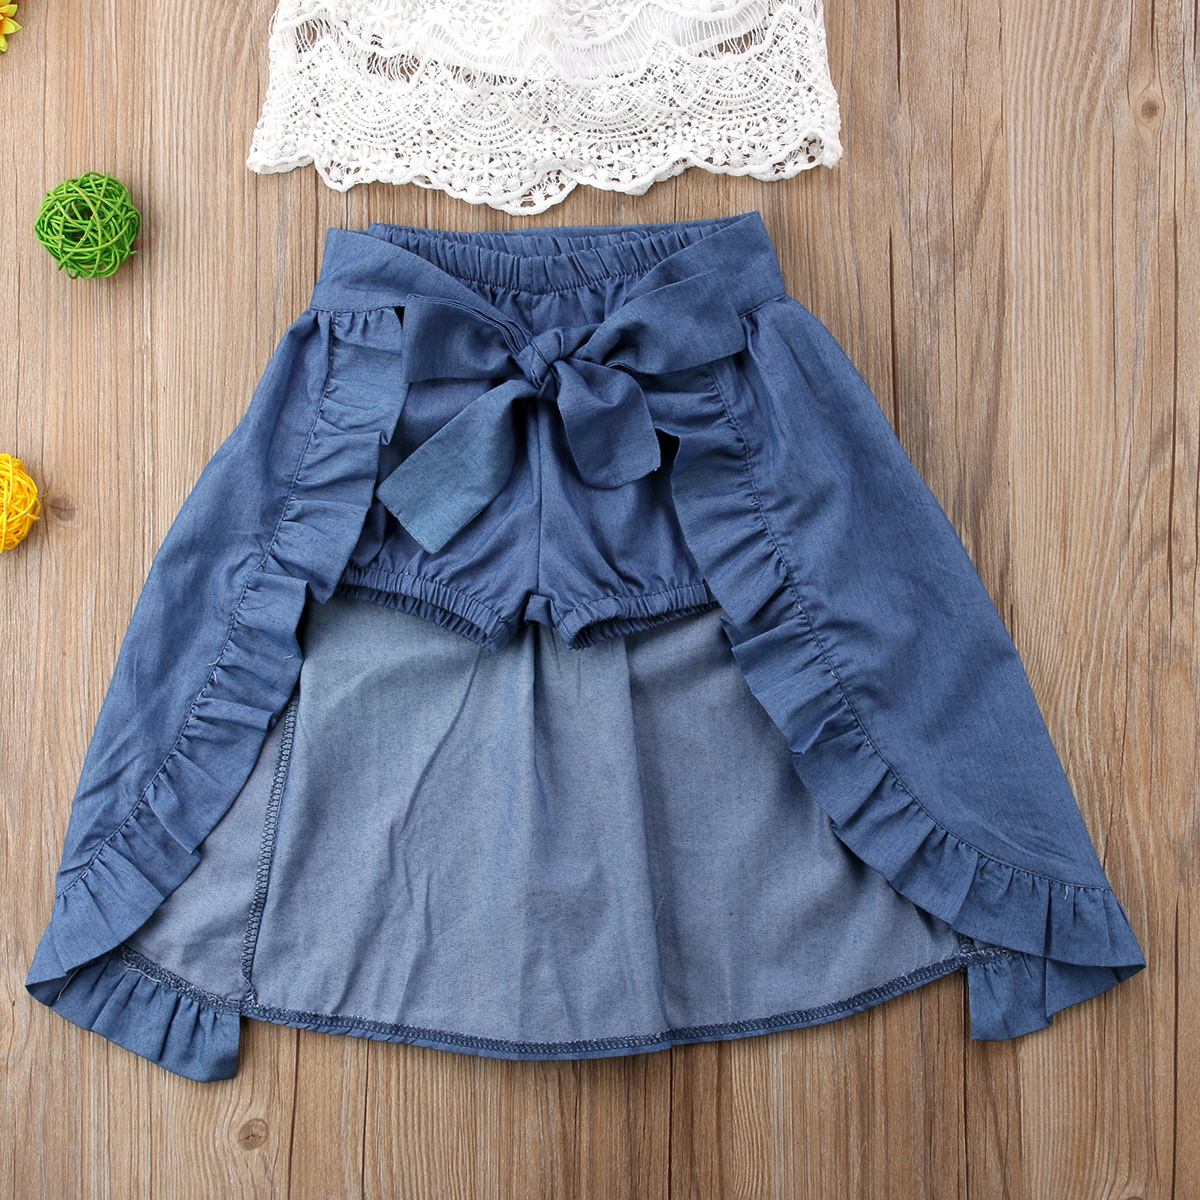 Newborn Girl Kid Lace Off shoulder Solid T shirt Top Pants Bowknot Dress Party Outfits Clothes Casual Short Sleeve Clothing in Clothing Sets from Mother Kids